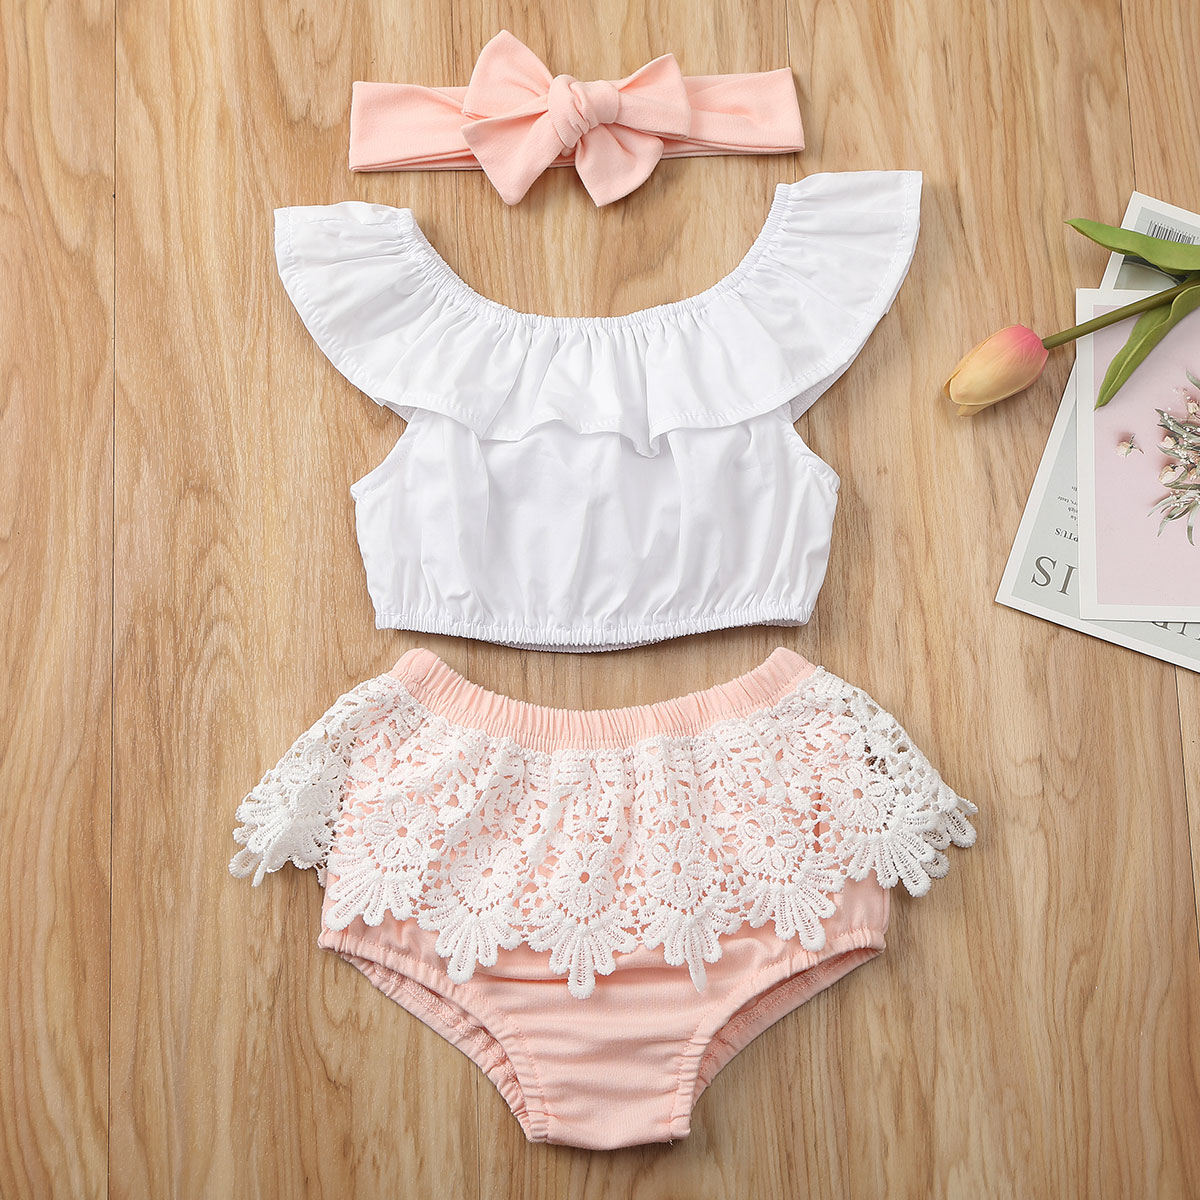 Emmababy Newborn Baby Girl Clothes Summer Solid Color Off Shoudler Ruffle Tops Lace Short Pants Headband 3Pcs Outfits Sunsuit